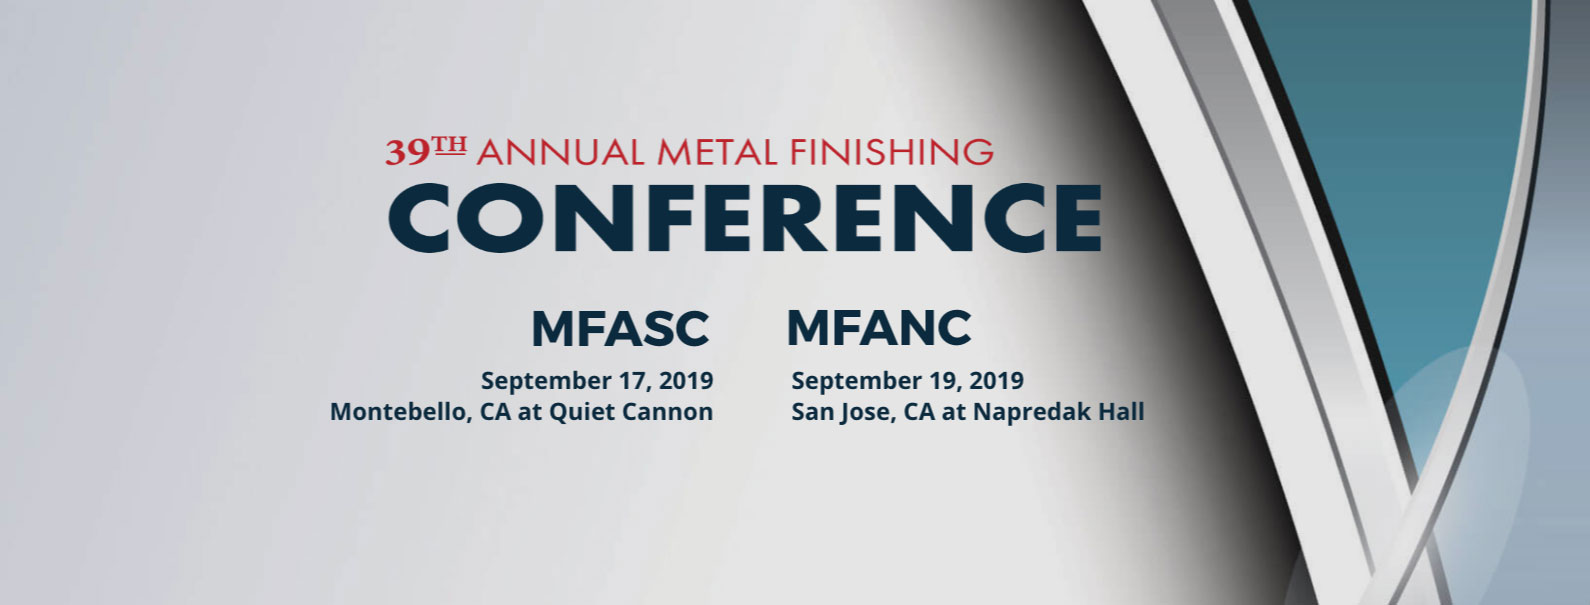 2019 Annual Metal Finishing Conference